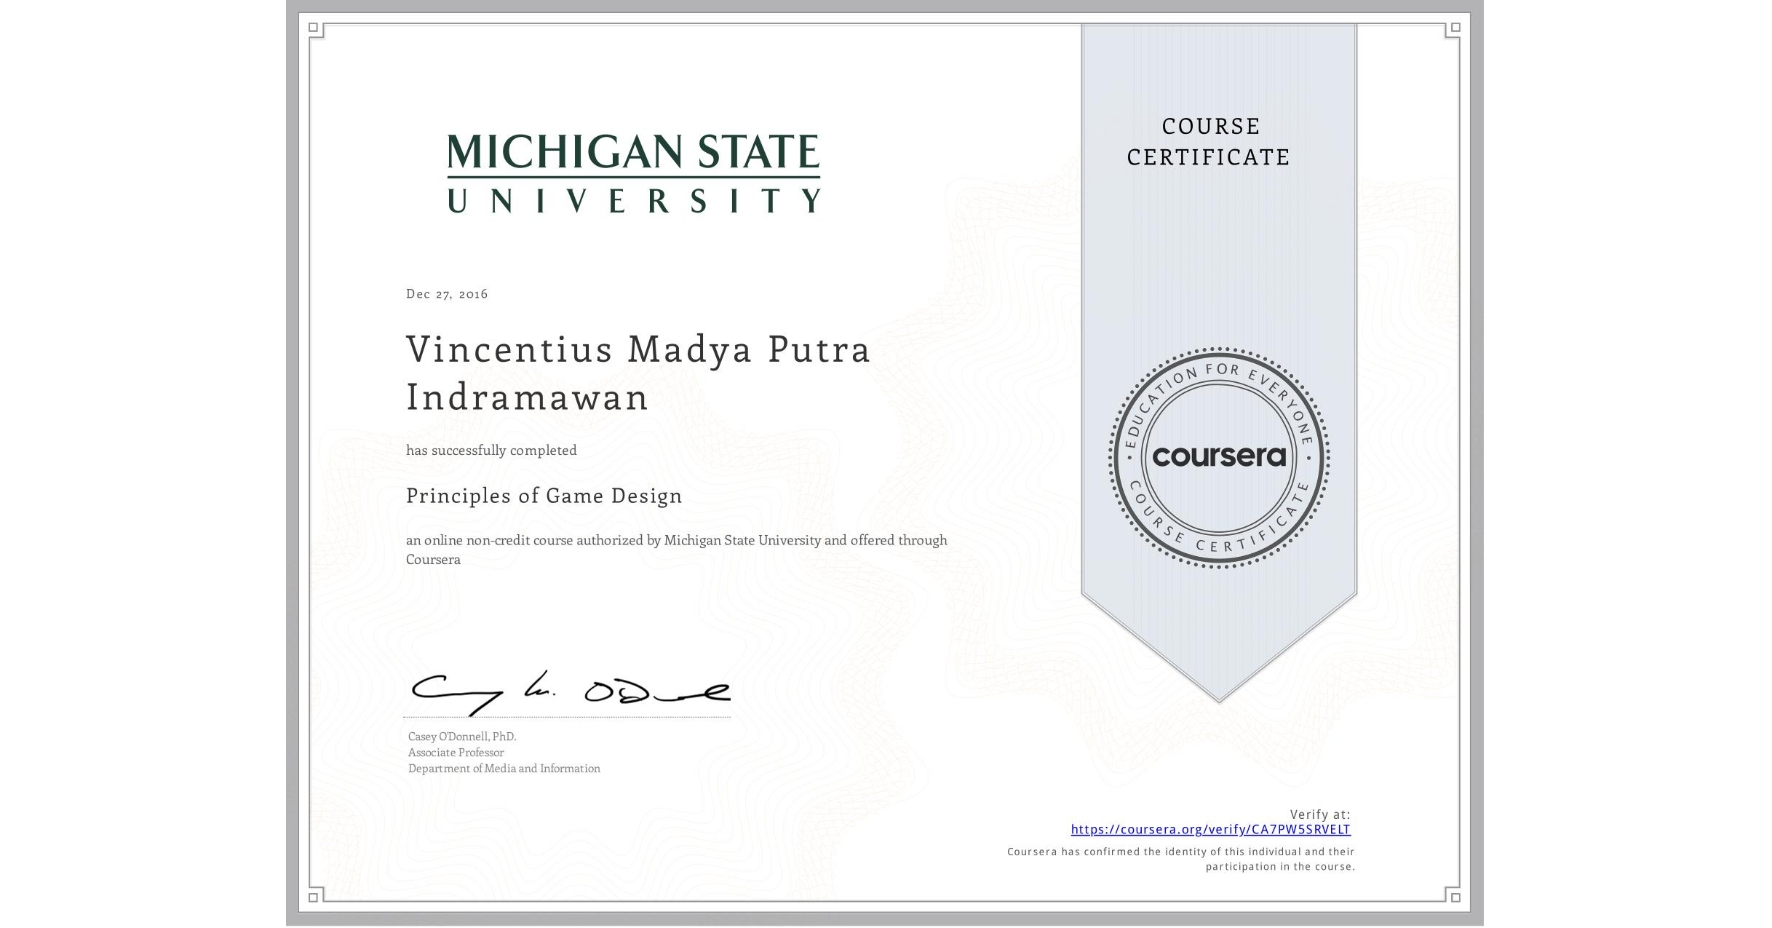 View certificate for Vincentius Madya Putra Indramawan, Principles of Game Design, an online non-credit course authorized by Michigan State University and offered through Coursera